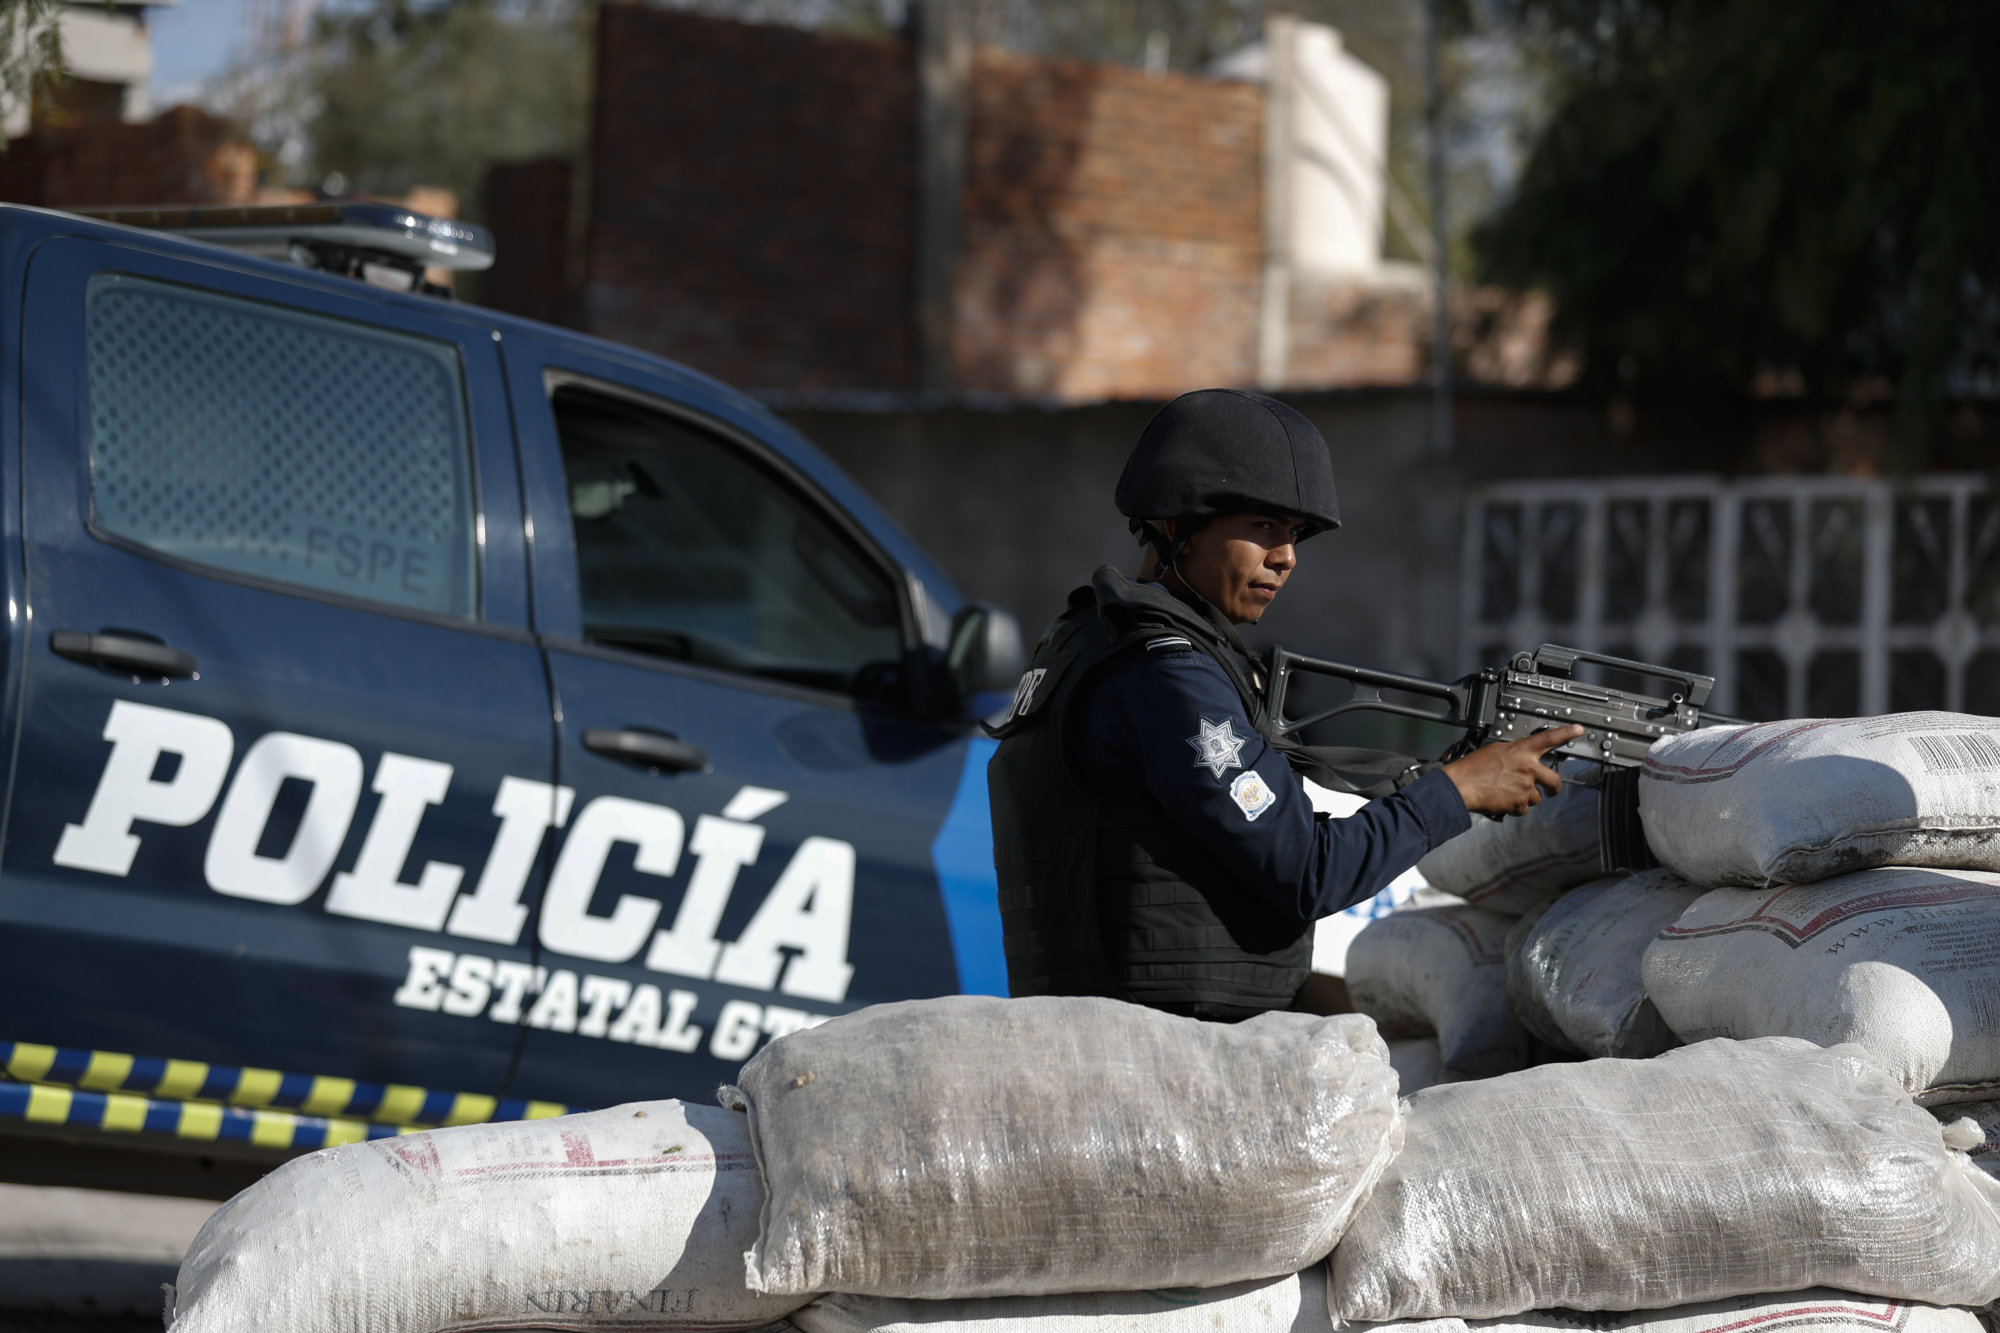 Police stand guard behind a parapet of sandbags at the entrance to Santa Rosa de Lima, birthplace of a local cartel that goes by the same name, in Guanajuato state, Mexico, in February. Mexico's fastest-rising cartel, the Jalisco New Generation gang, has a reputation for ruthlessness and violence unlike any since the fall of the old Zetas cartel. | AP